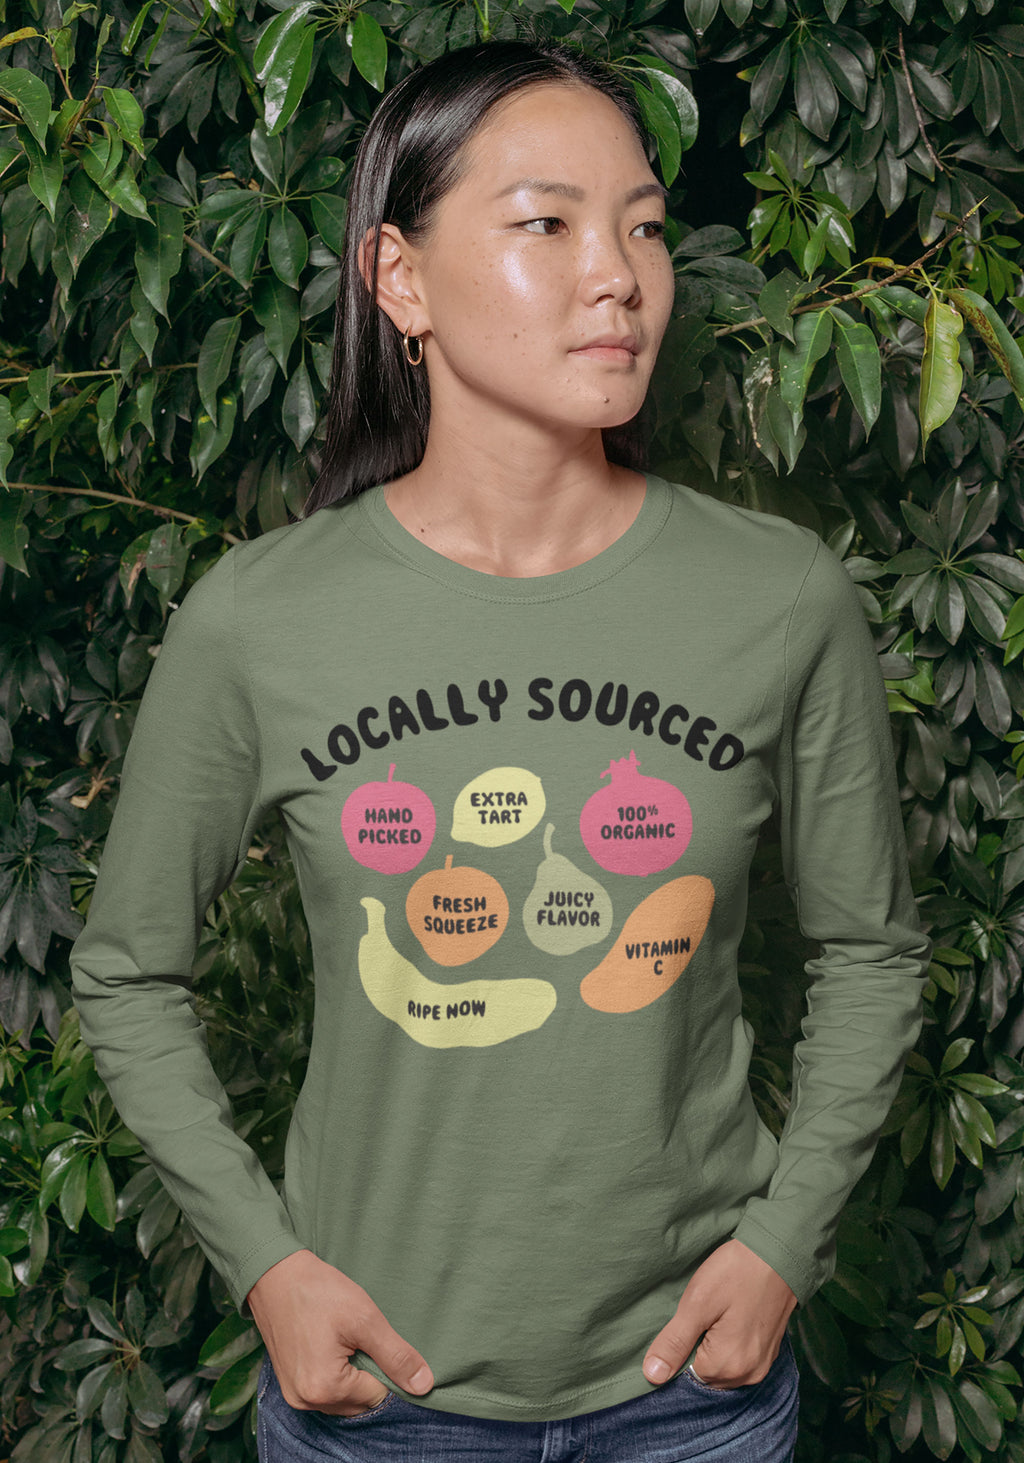 Locally Sourced Long Sleeve Tee / womens graphic tees / organic vegetarian vegan / vintage style shirt / farmers market fruits souvenir